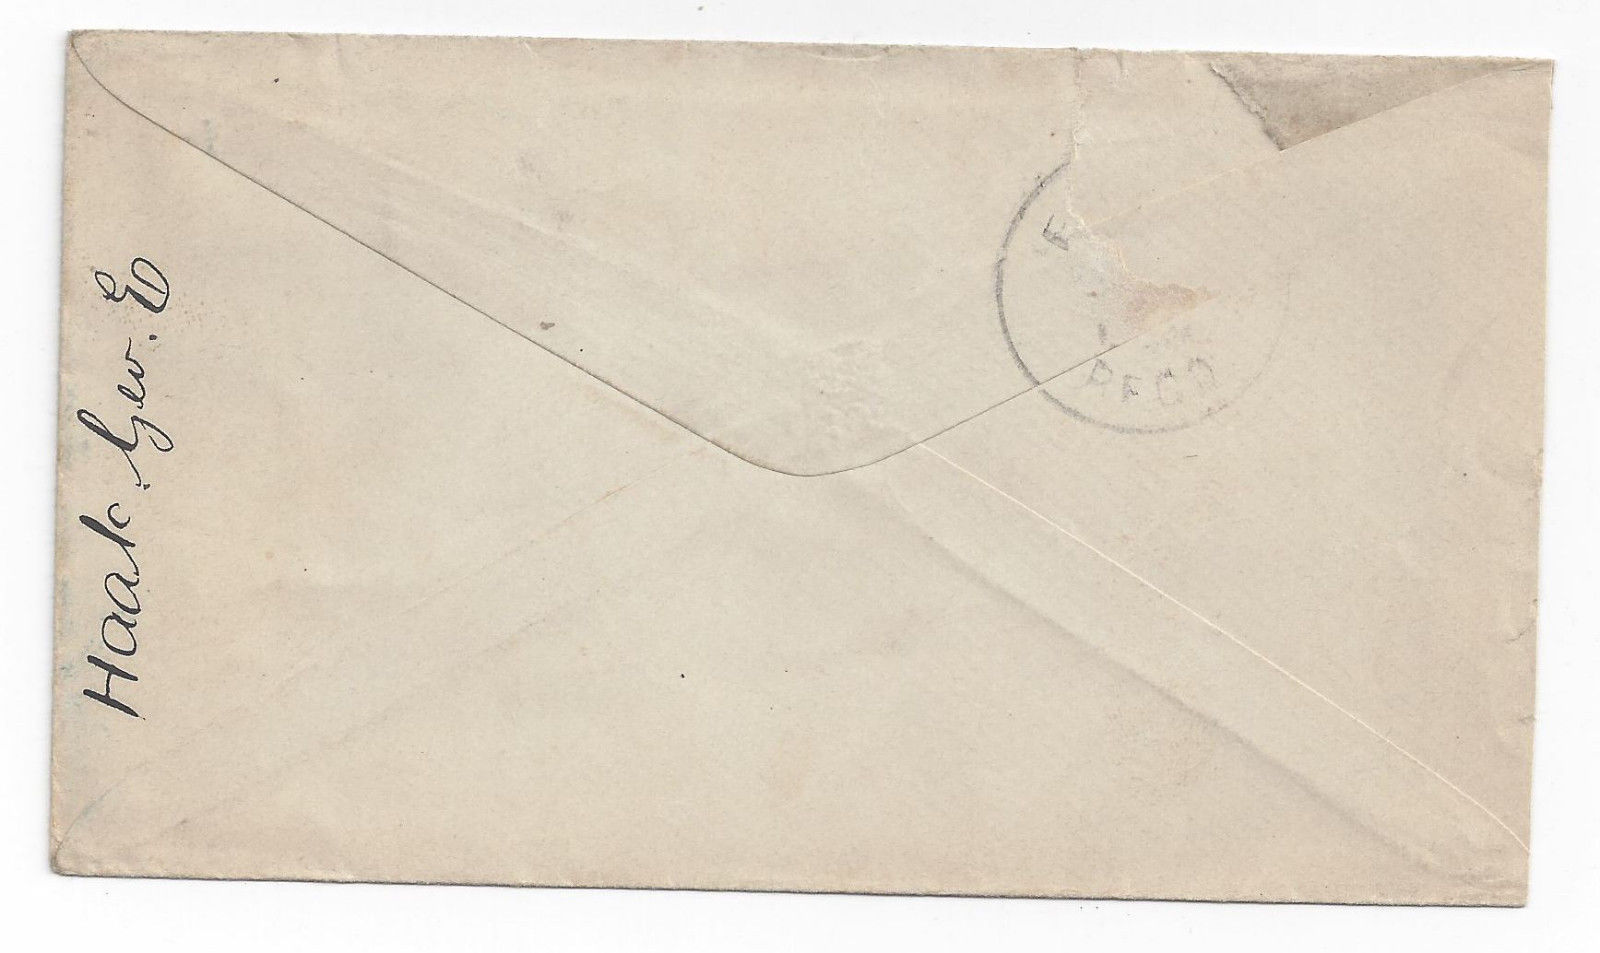 19th Century Cover Reading PA Fancy Cancel Solid Obliterator Bullseye placement image 2